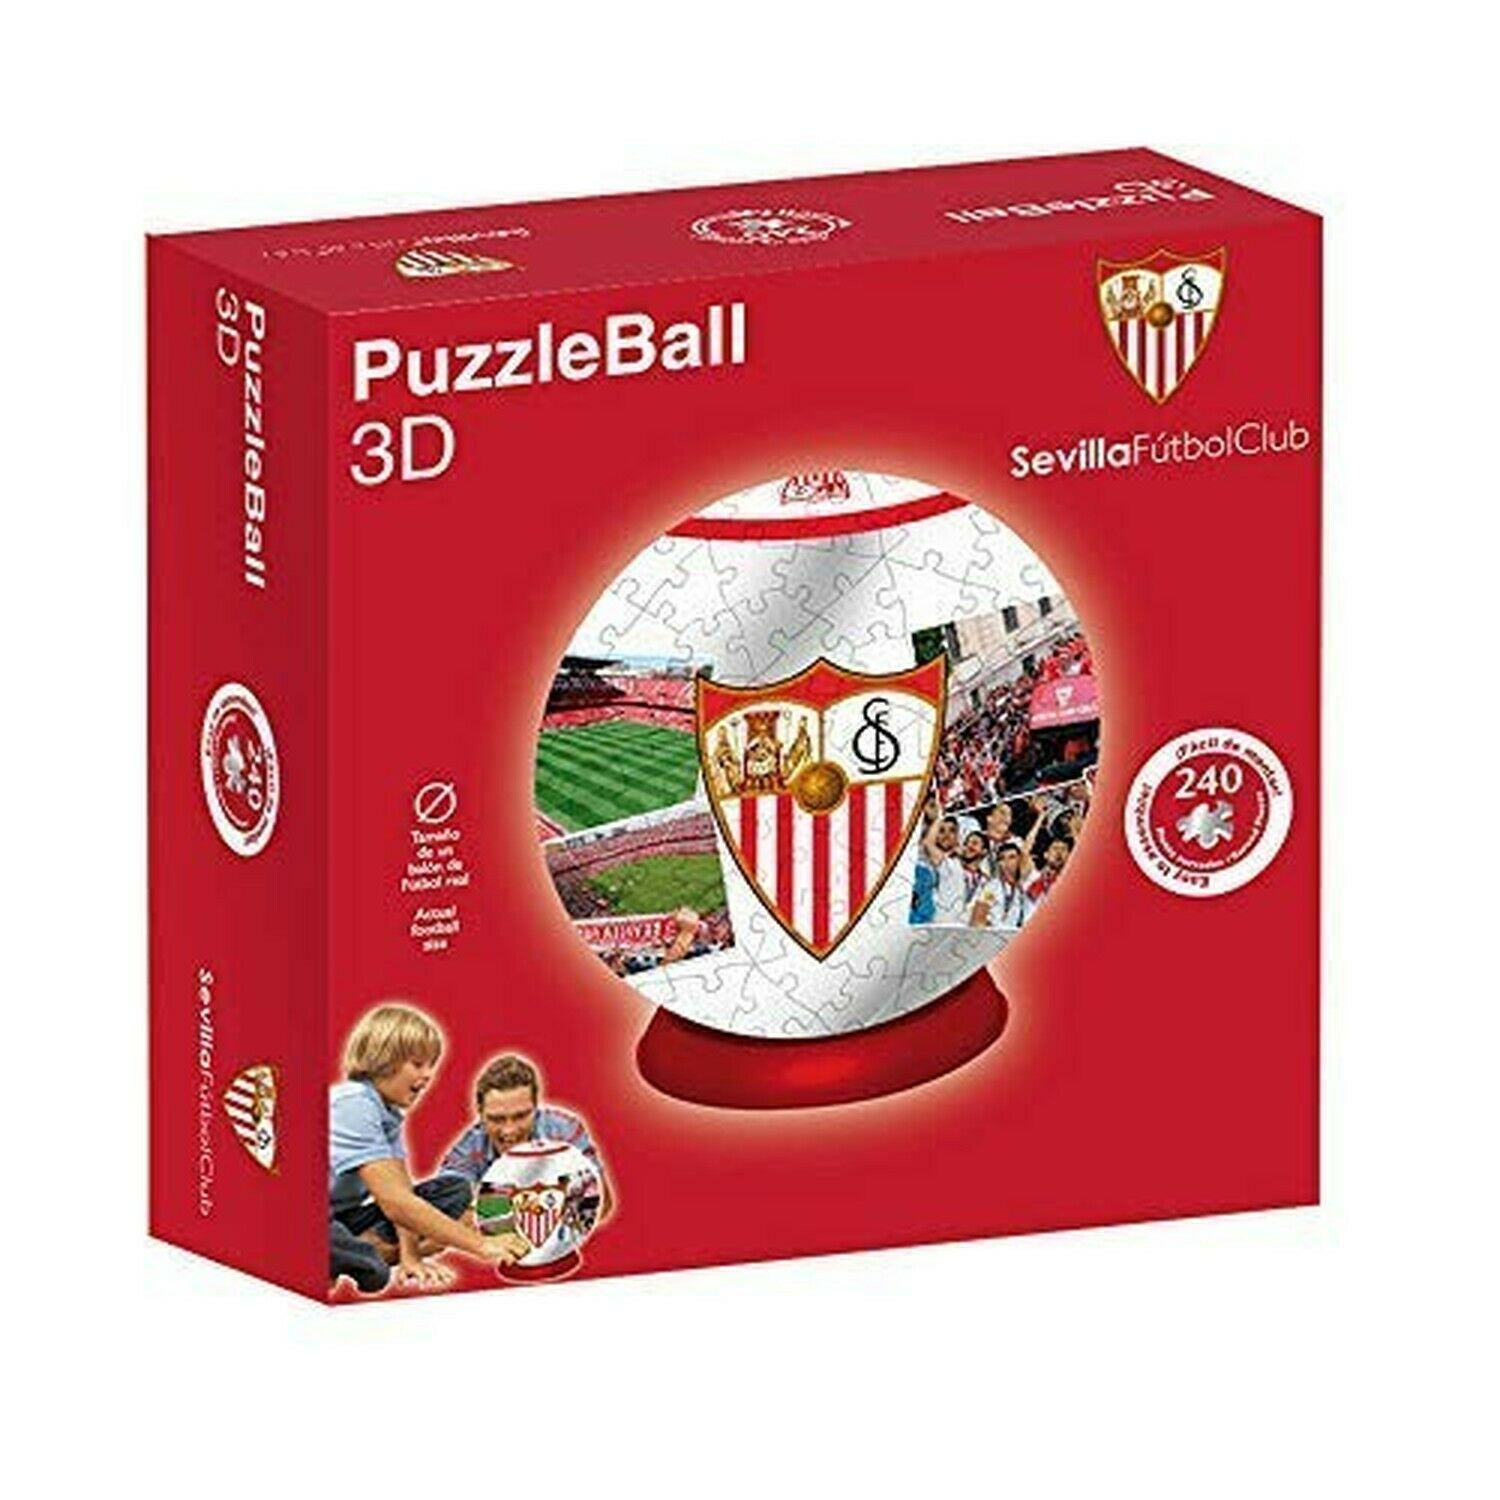 ELEVEN FORCE Real Betis PuzzleBall Sevilla FC, rot (240 Curved Pieces)